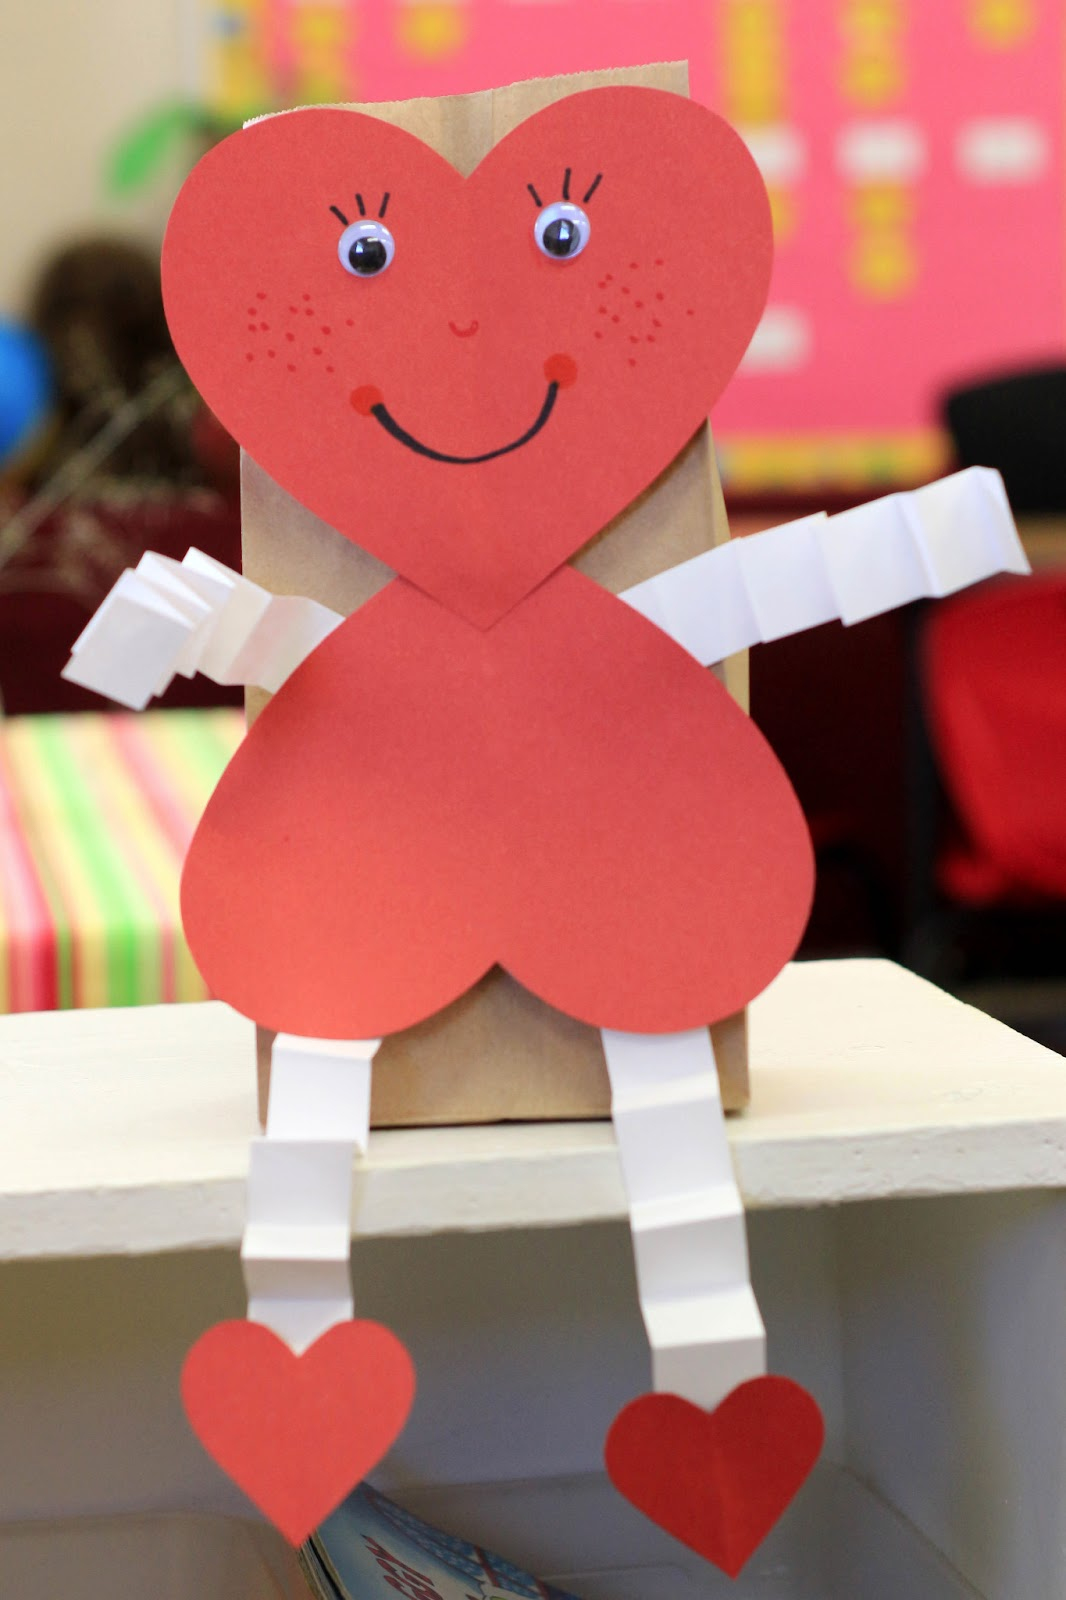 Mrs ricca 39 s kindergarten valentine 39 s day for Crafts for valentines day ideas